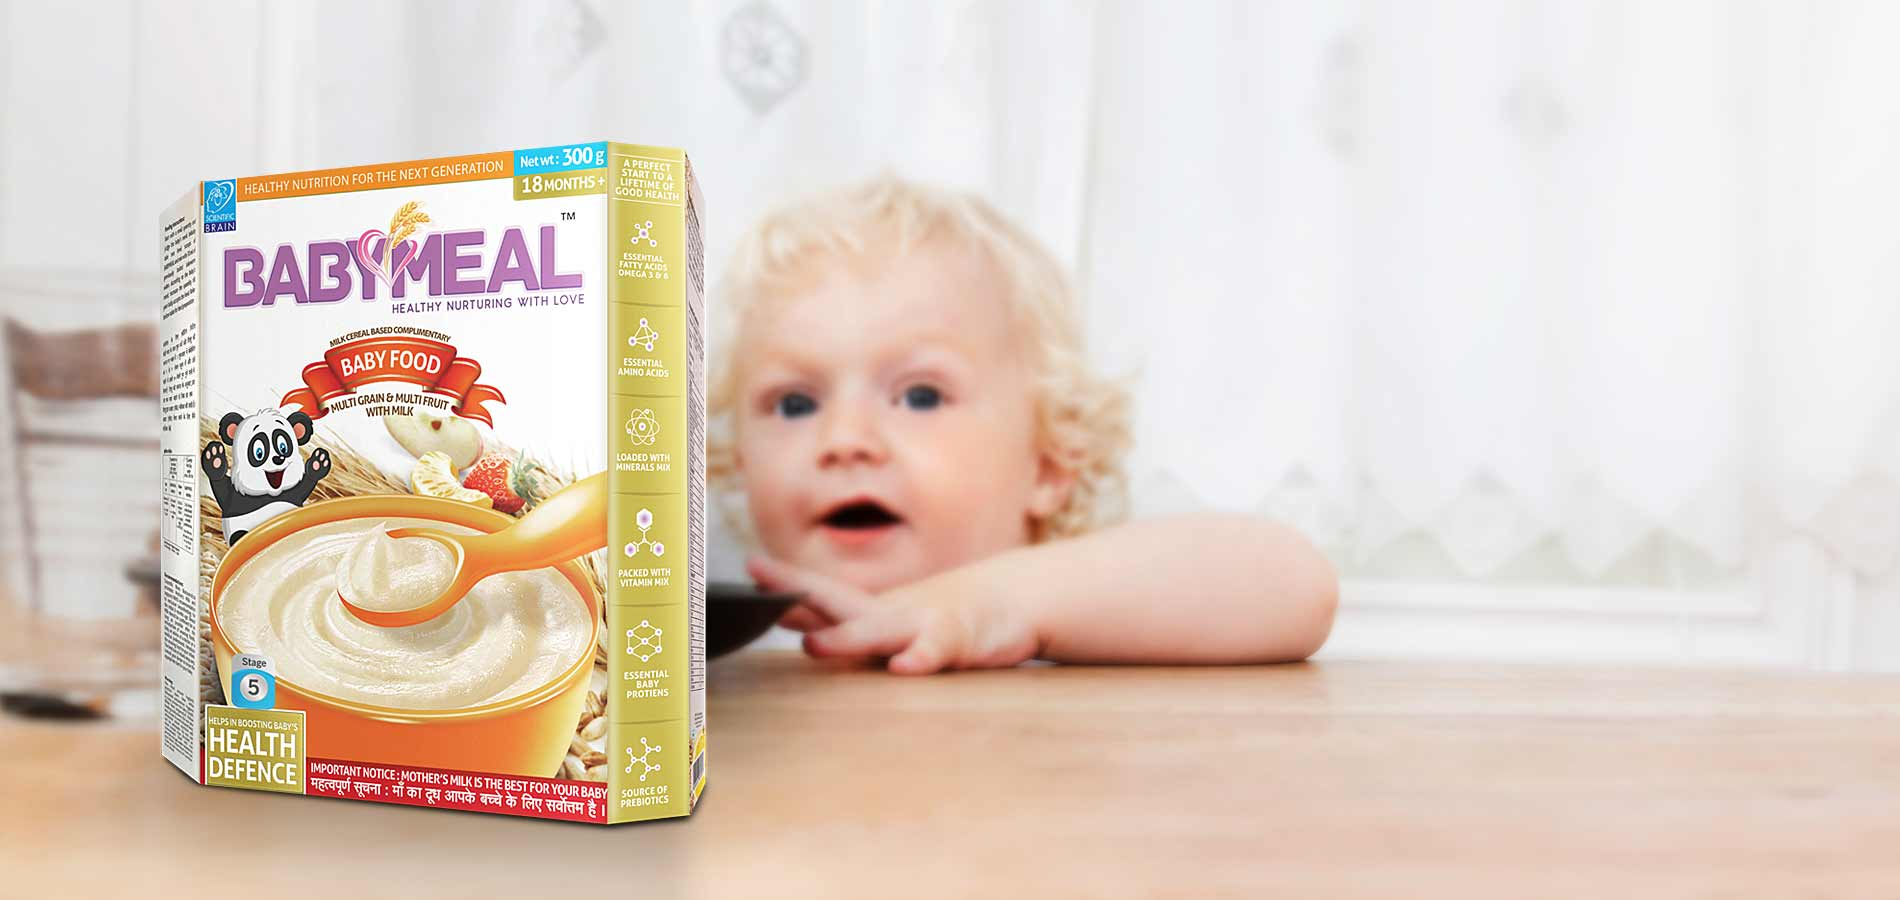 Babymeal,milk based cereal food, wheat cereal baby food, healthy infant food, best baby food manufacturers, organic baby food brand, food for babies, Indian, granum, grainylac, Rice cereal baby food brand, best healthy baby food, best Indian manufacturers, iron fortified, first solid food, vitamins, infant food brand, organic food, Baby best cereal food, granum, scientific brain Nutraceutical, best healthy baby food brand india, infant food brand, infant healthy baby food brand,  toddlers, nutritious baby food online, First solid food brand, organic food, 18 months baby food brand, 12 months baby food brand, infant cereal brand, Indian baby food, best baby food brand, baby products, first food, moms food, home made food, organic baby formula food, premade baby food, toddlers food brand, natural baby food, startup baby food brand, infant healthy baby, Baby food online, Baby cereals, Multivitamin food infants, Milk base toddlers food, Breast feeding, Healthy baby food packaging, Brij Design Studio, babymeal, Grainylac, Yummy for Mummy, Kidolac, homemade baby food, creative packaging design, baby food packaging , Indian consumer brand, food for infants, early food, Indian baby food, Infants food, Healthy toddlers, growing toddlers brand, Mothers food brand, Indian toddlers brand, Health brand India, Kids brands, baby product, pediatric recommended, doctors recommended, toddler food